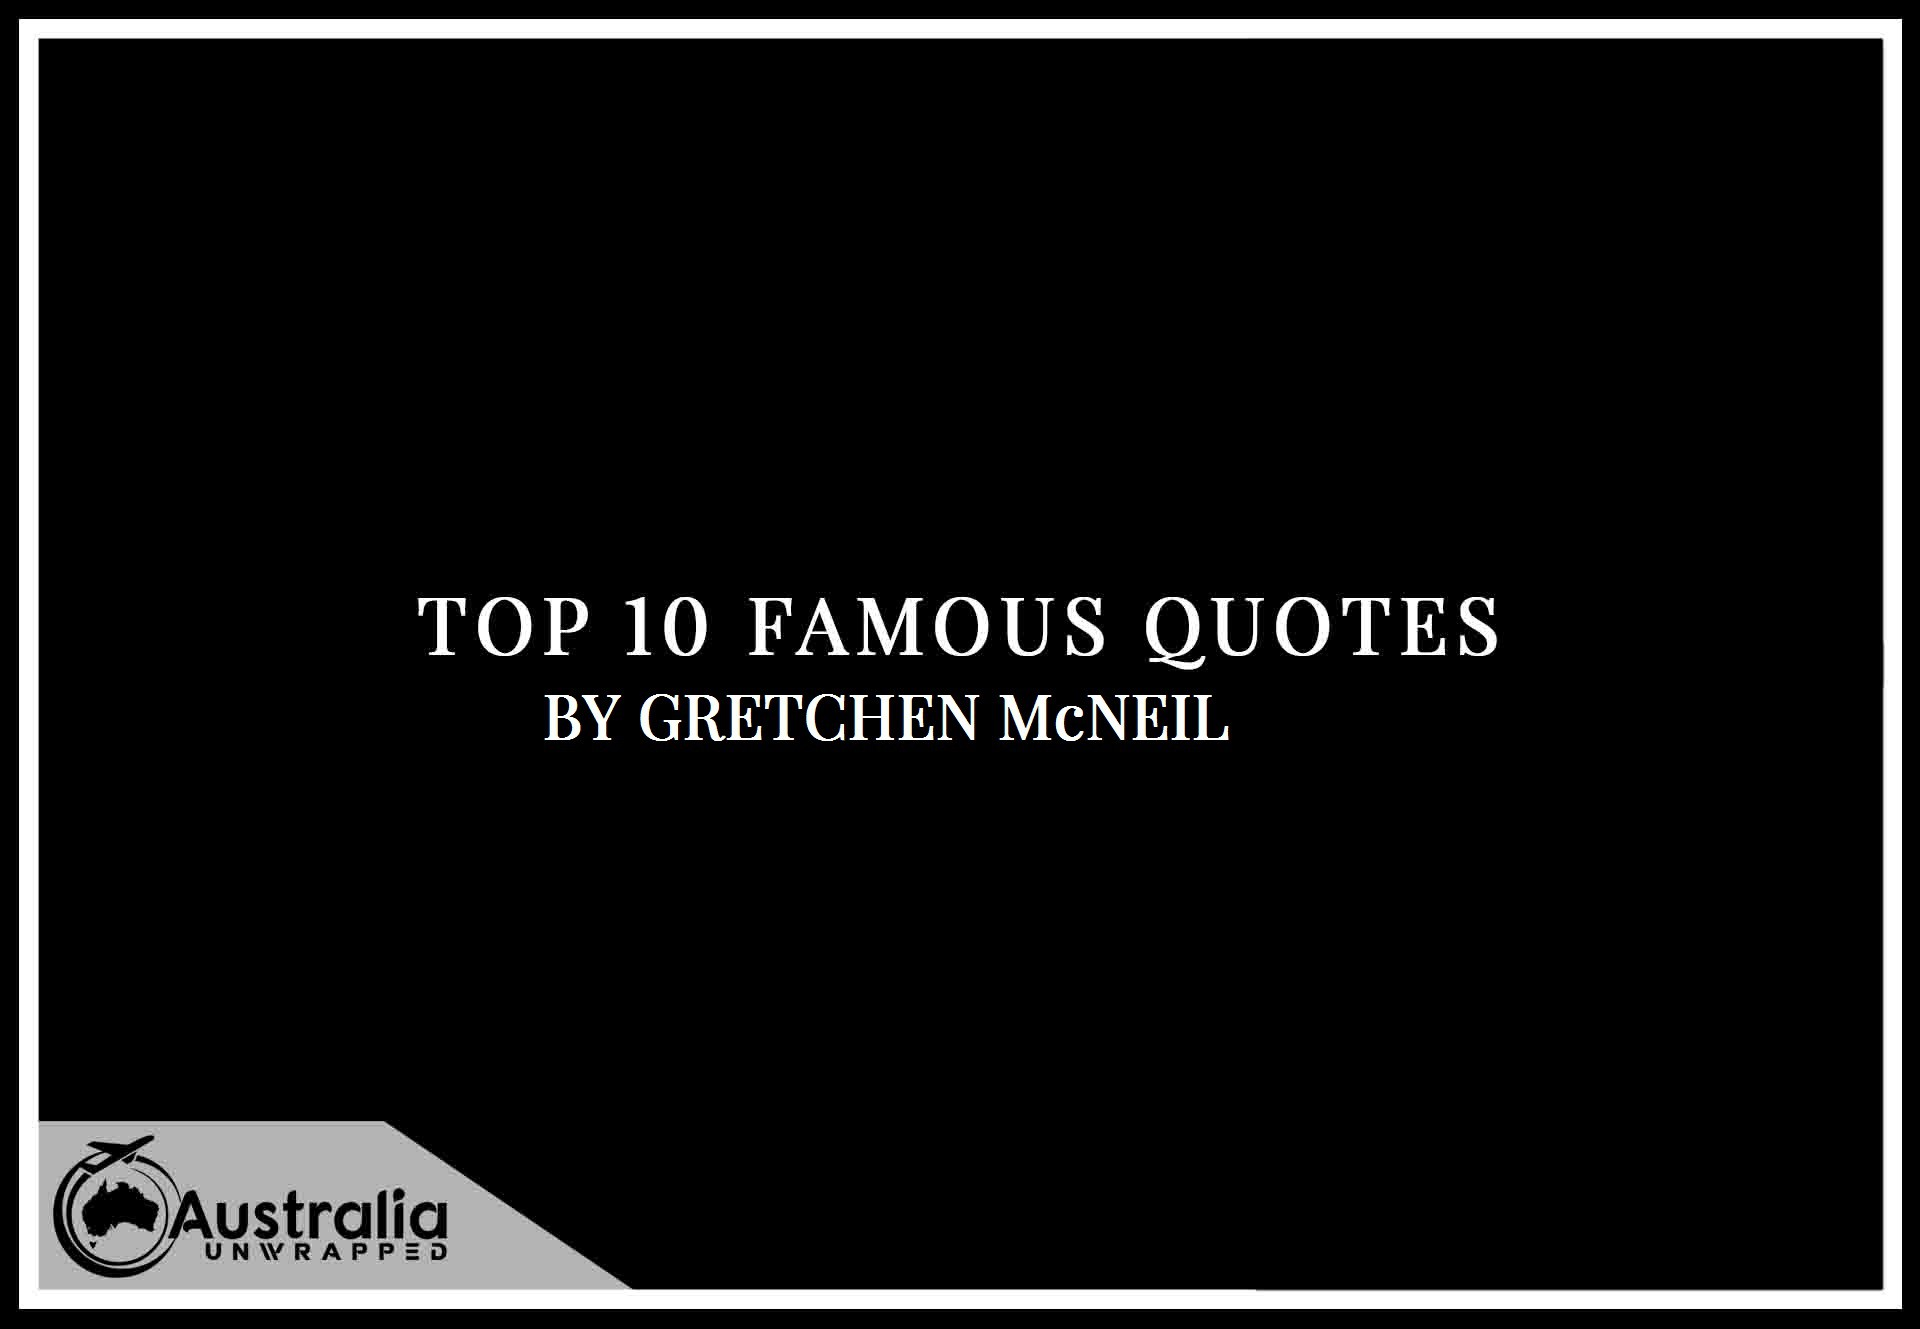 Gretchen McNeil's Top 10 Popular and Famous Quotes